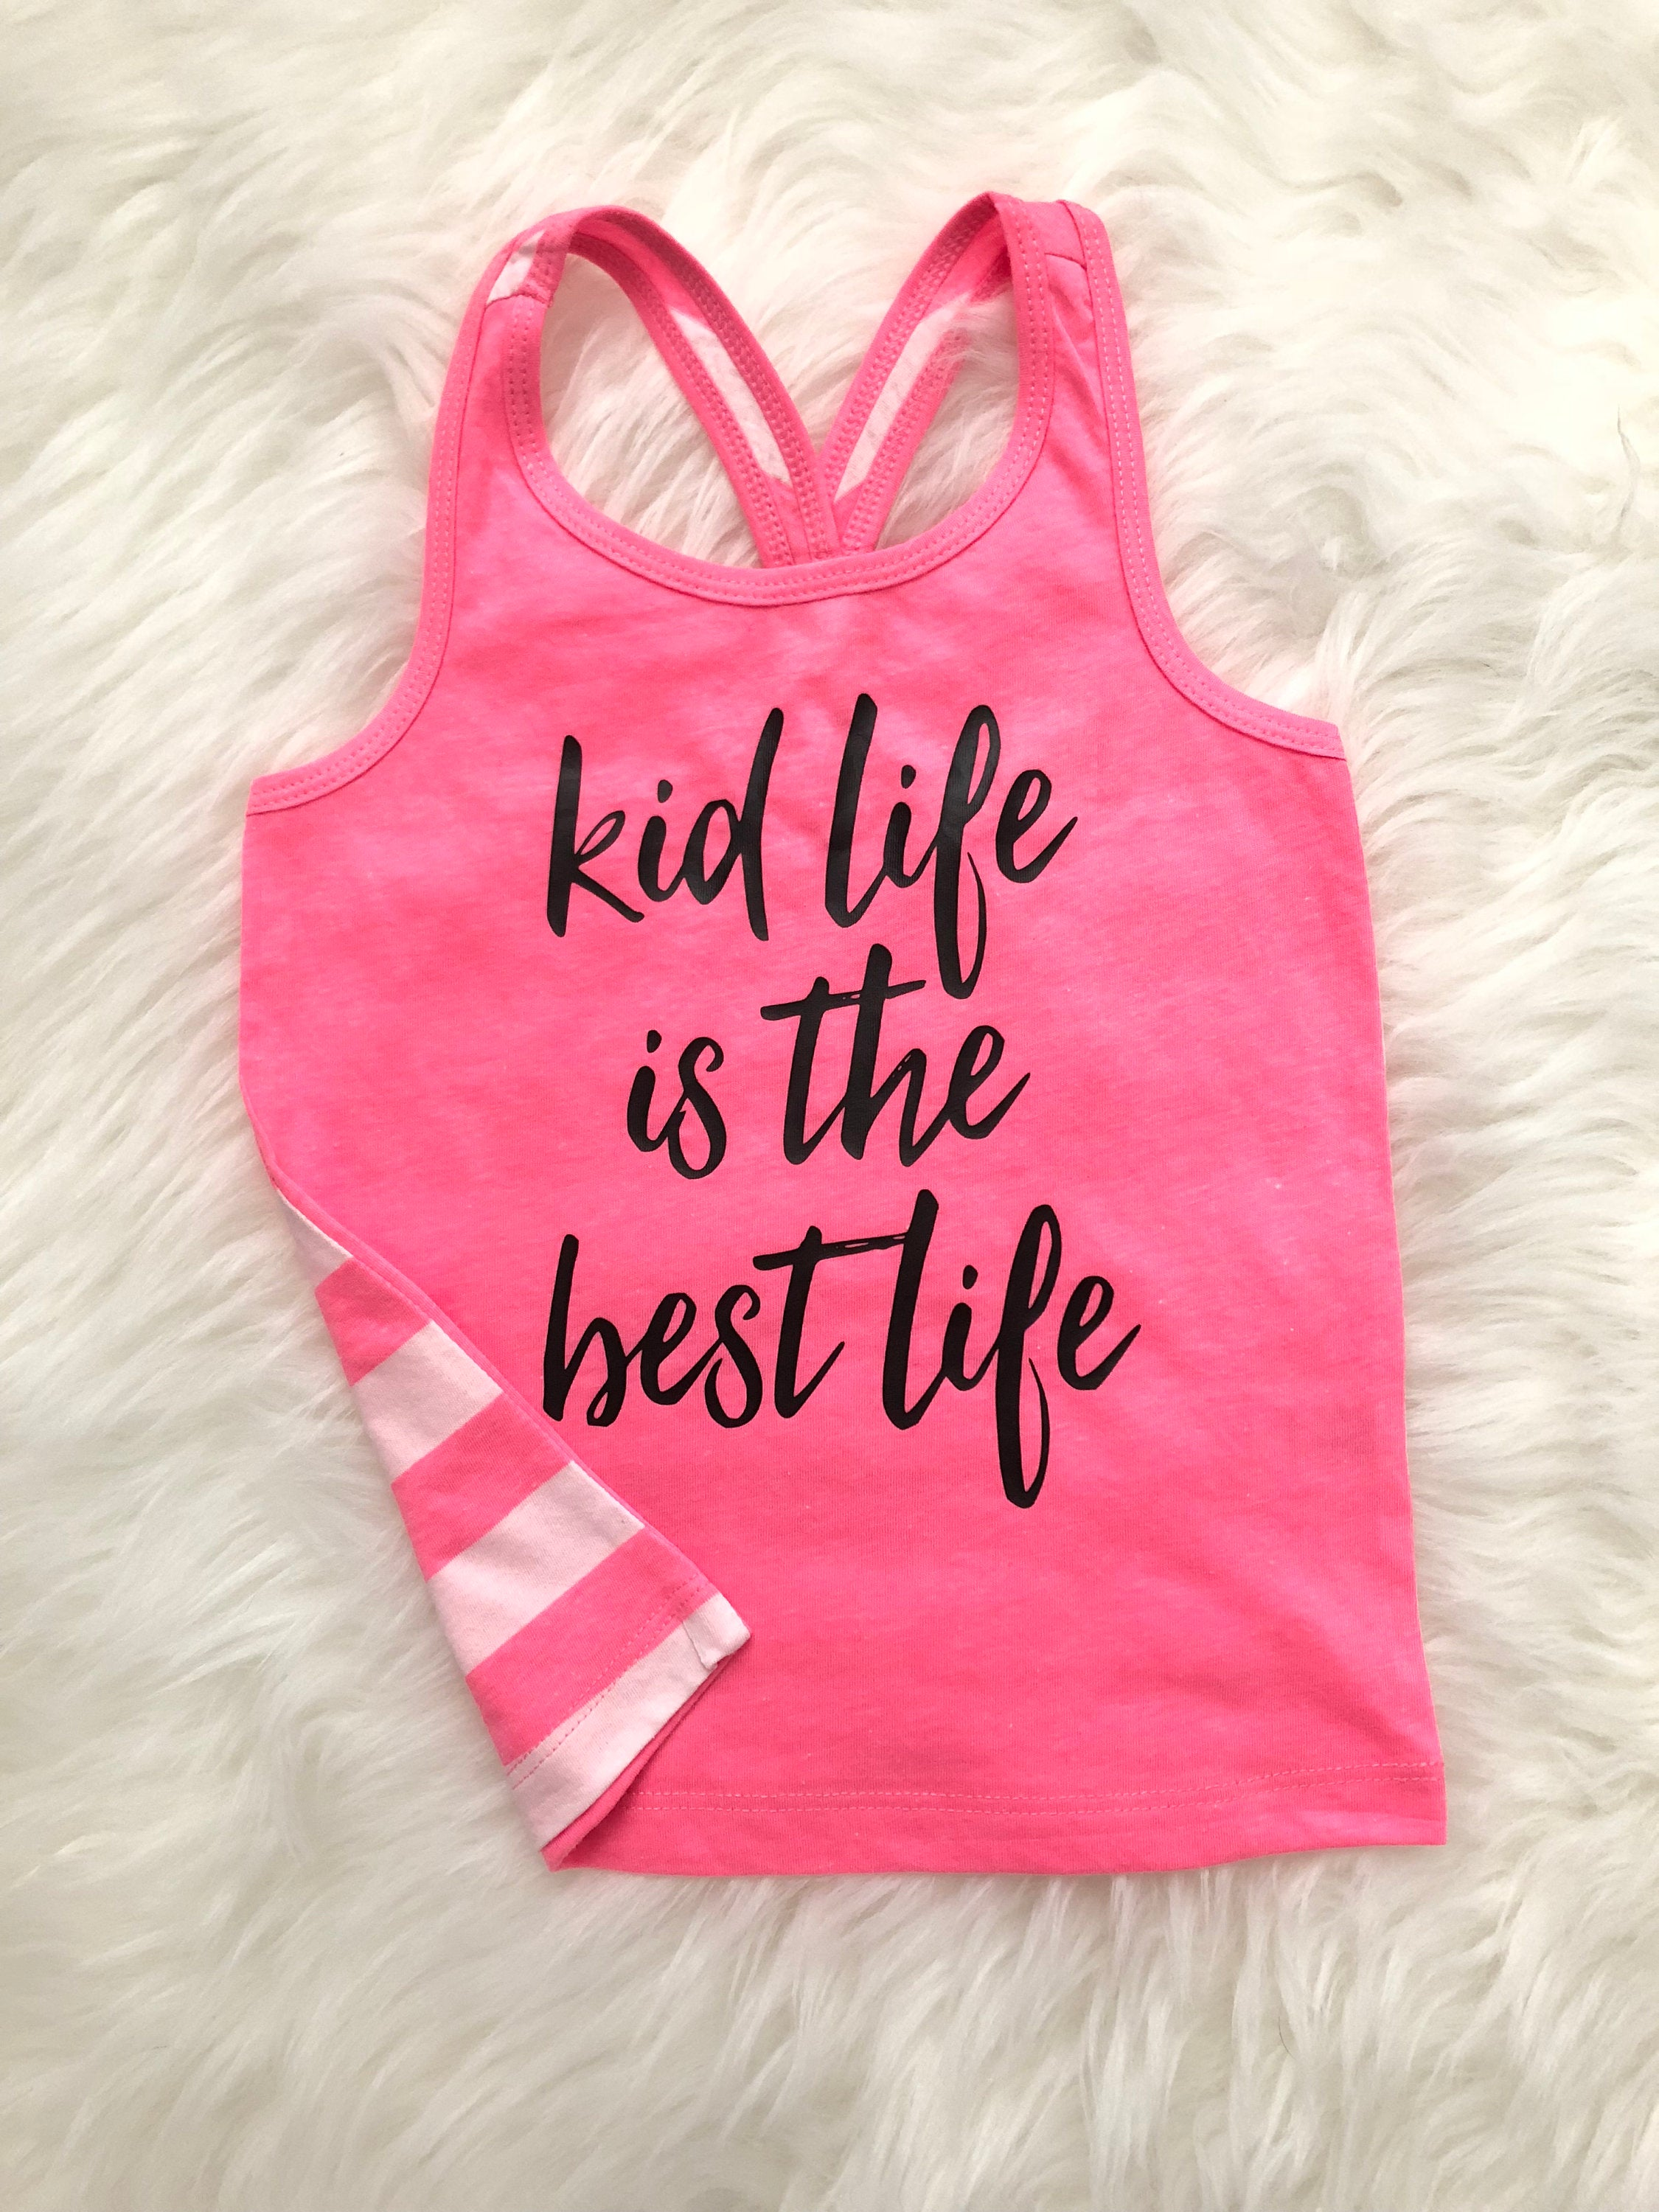 Kid Life is the Best Life Hot Pink or Coral Striped Back Two-toned Racerback Tank Top - Pink, White, and Black Girls Shirt - Kids Summer Top